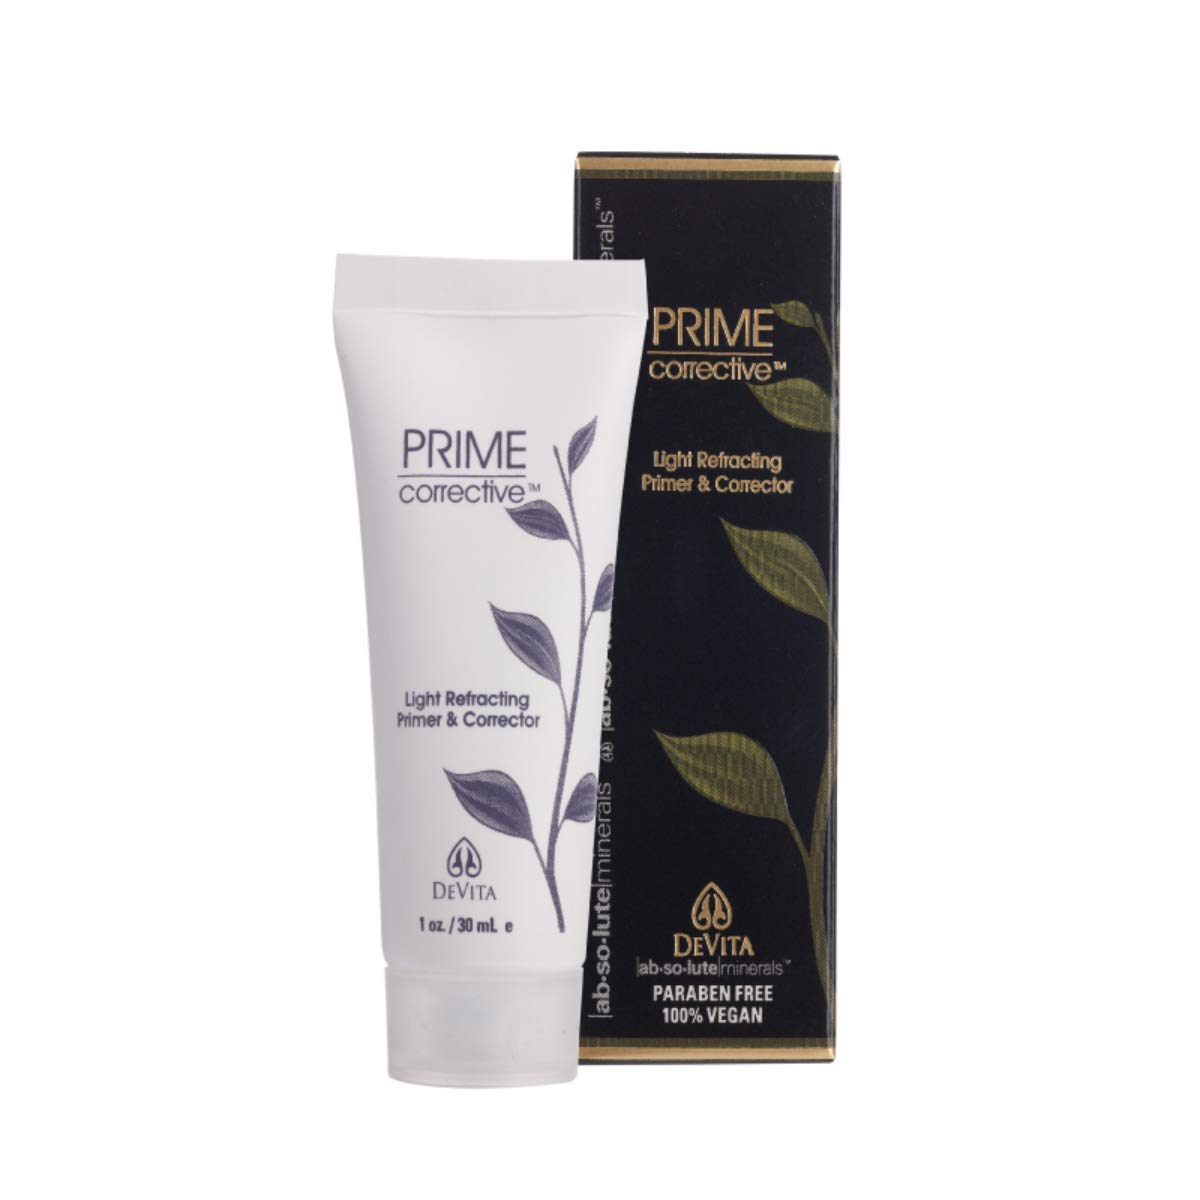 Prime Corrective - clear facial primer and corrector to help neutralize imperfections without colored pigments, to minimize the look of wrinkles and facial pores. Vegan & Paraben Free.